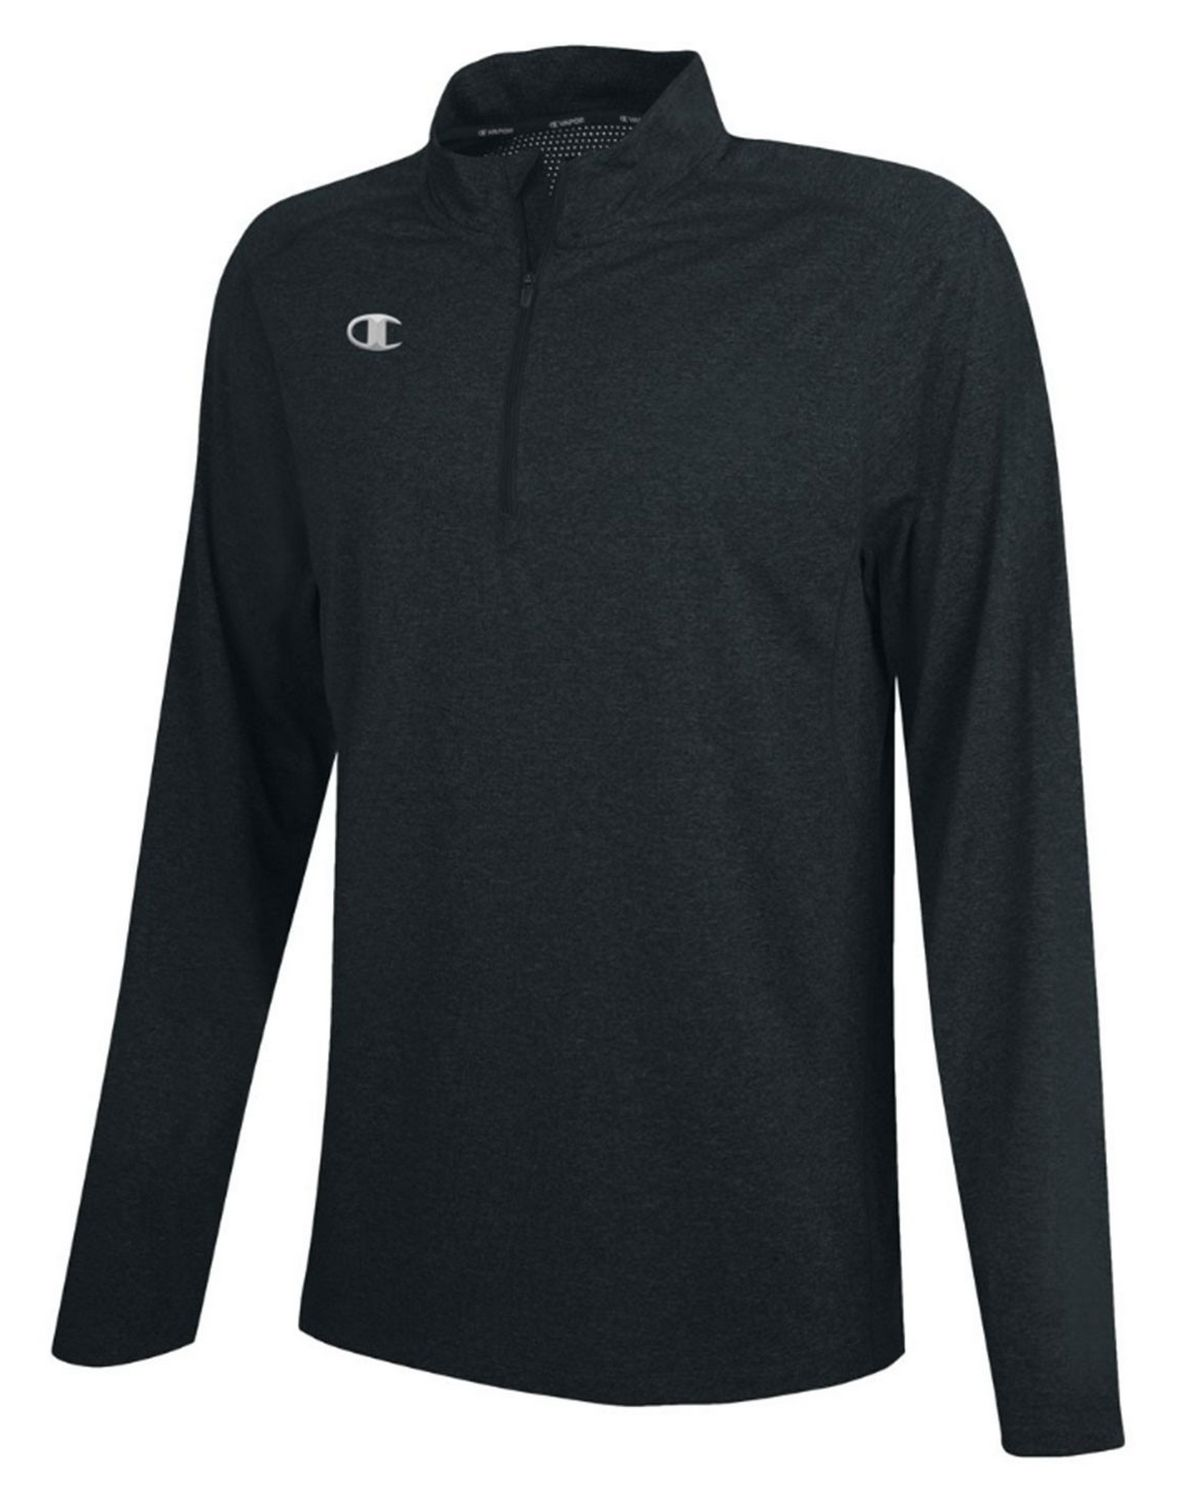 Champion CV80 Mens Vapor Pullover - Black Heather - XL CV80